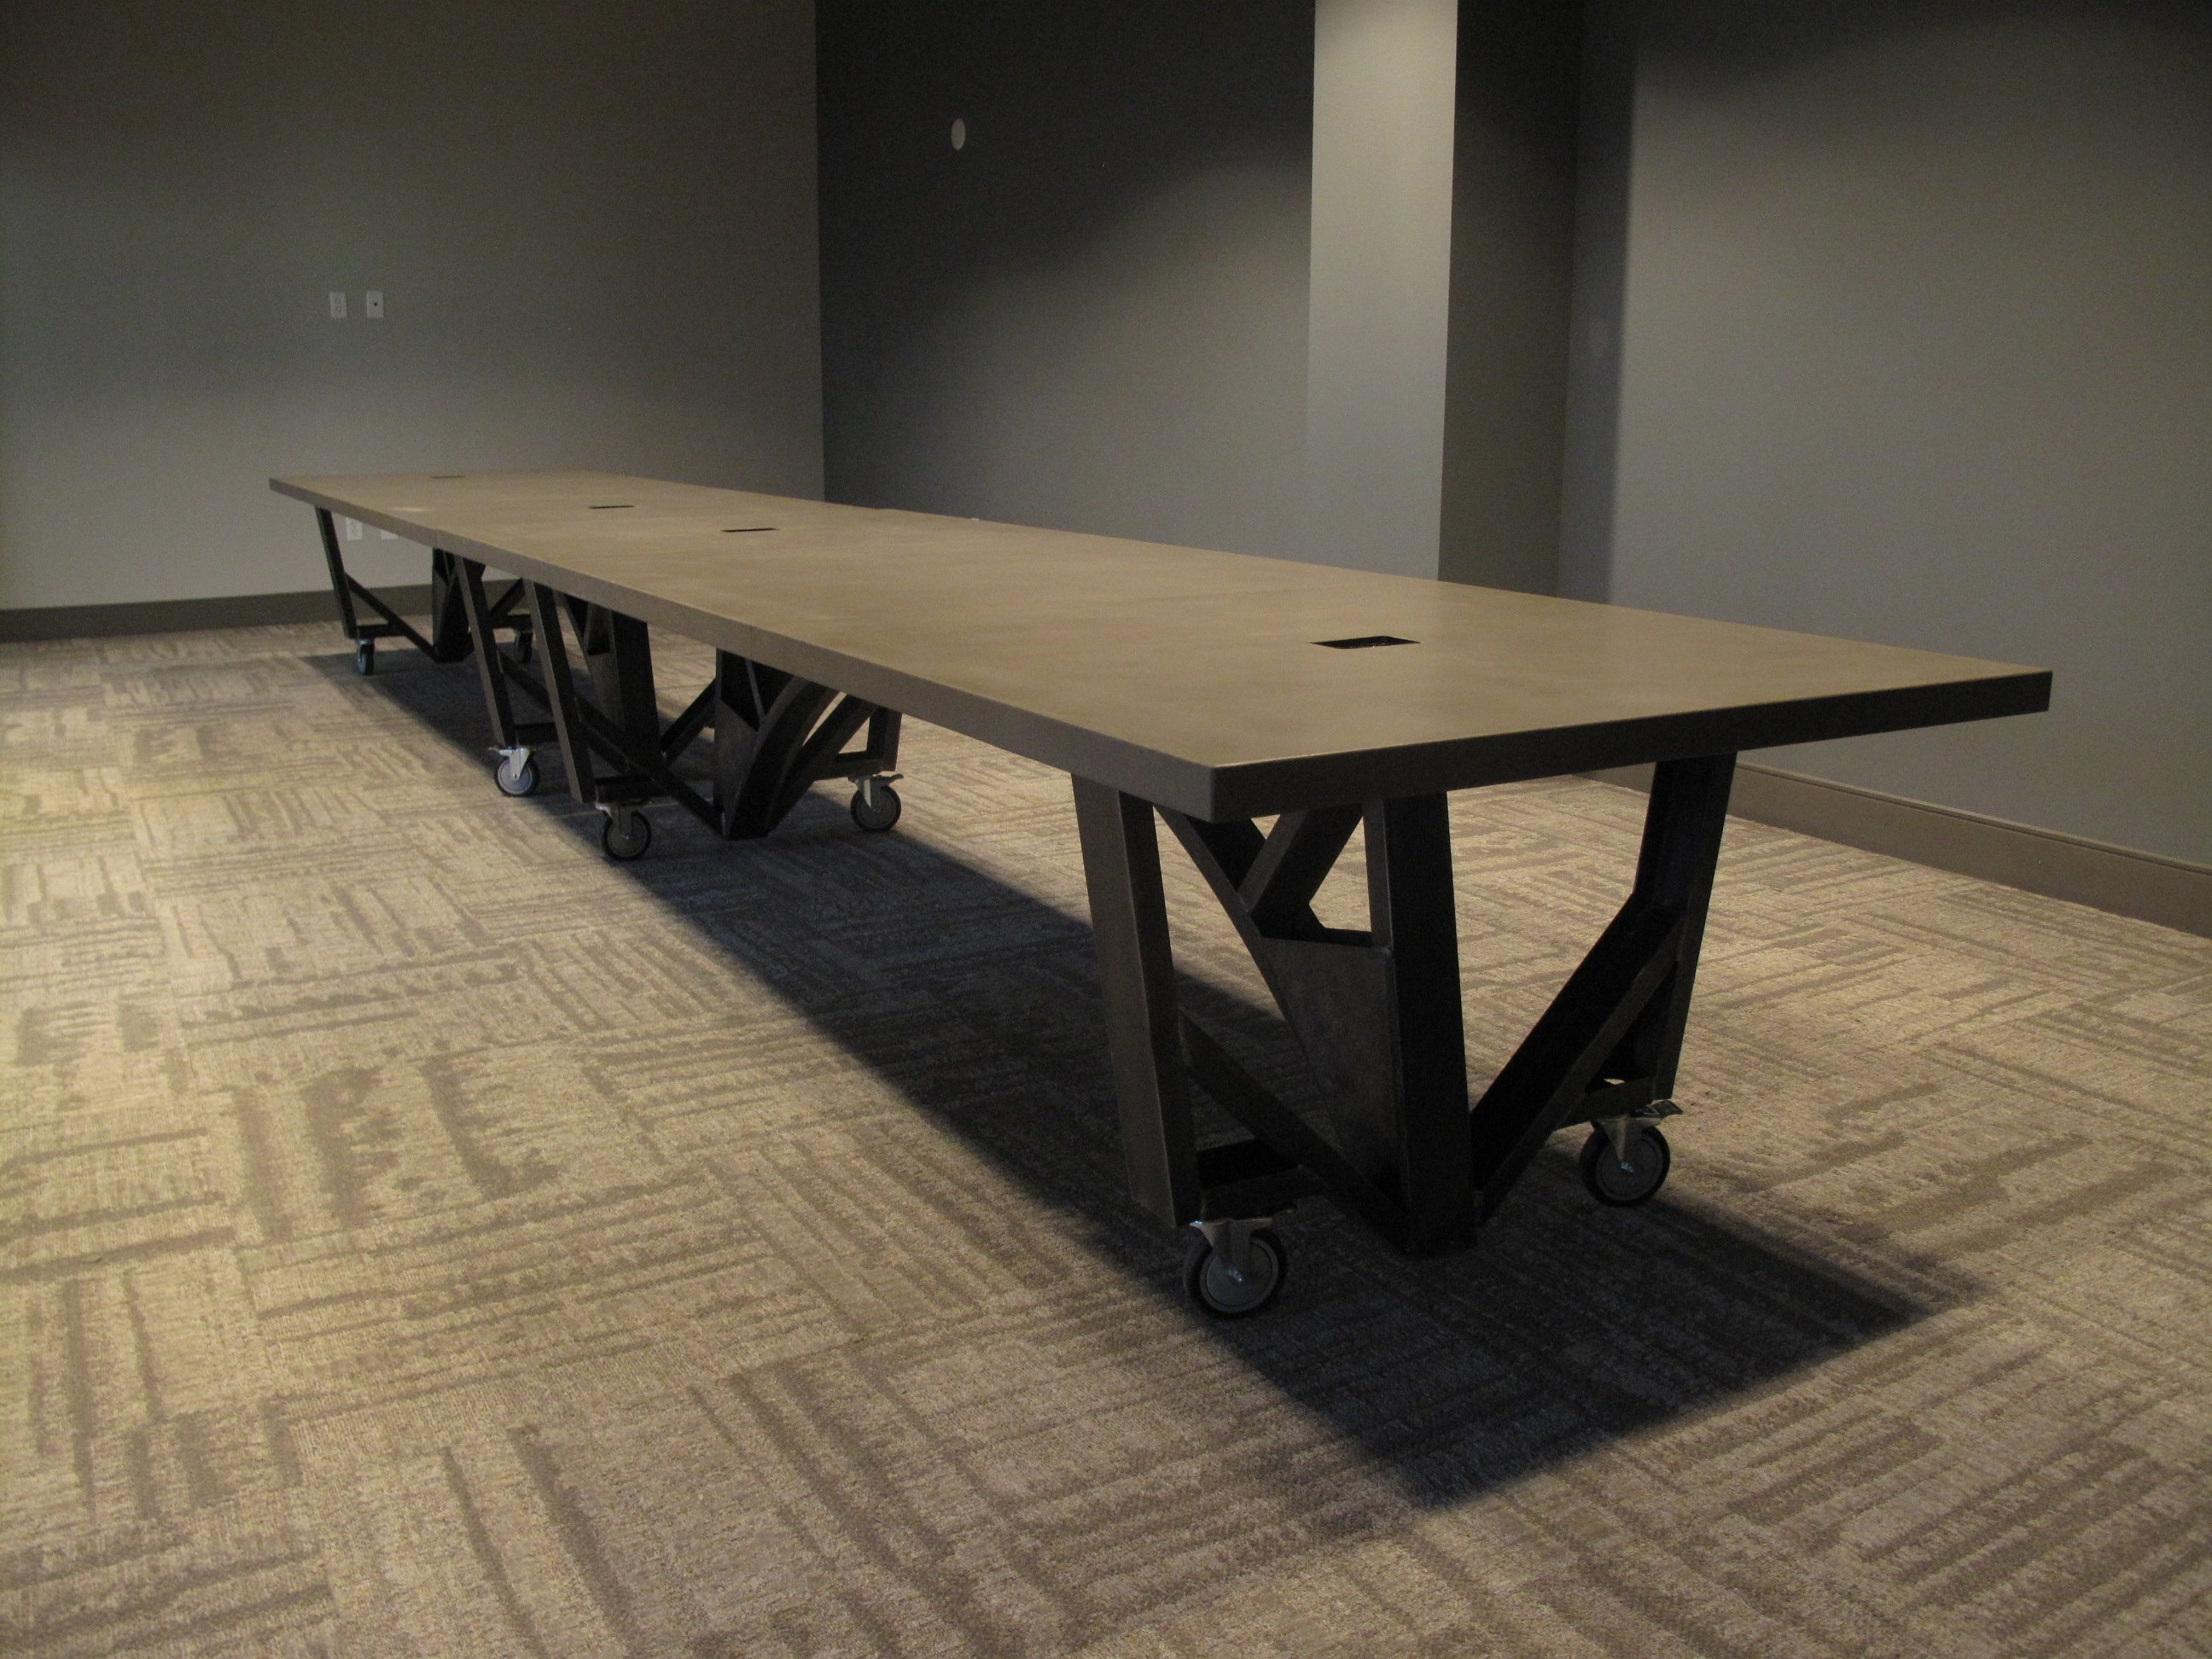 black and tables product conference fulcrum table eclipse glass circular meeting in